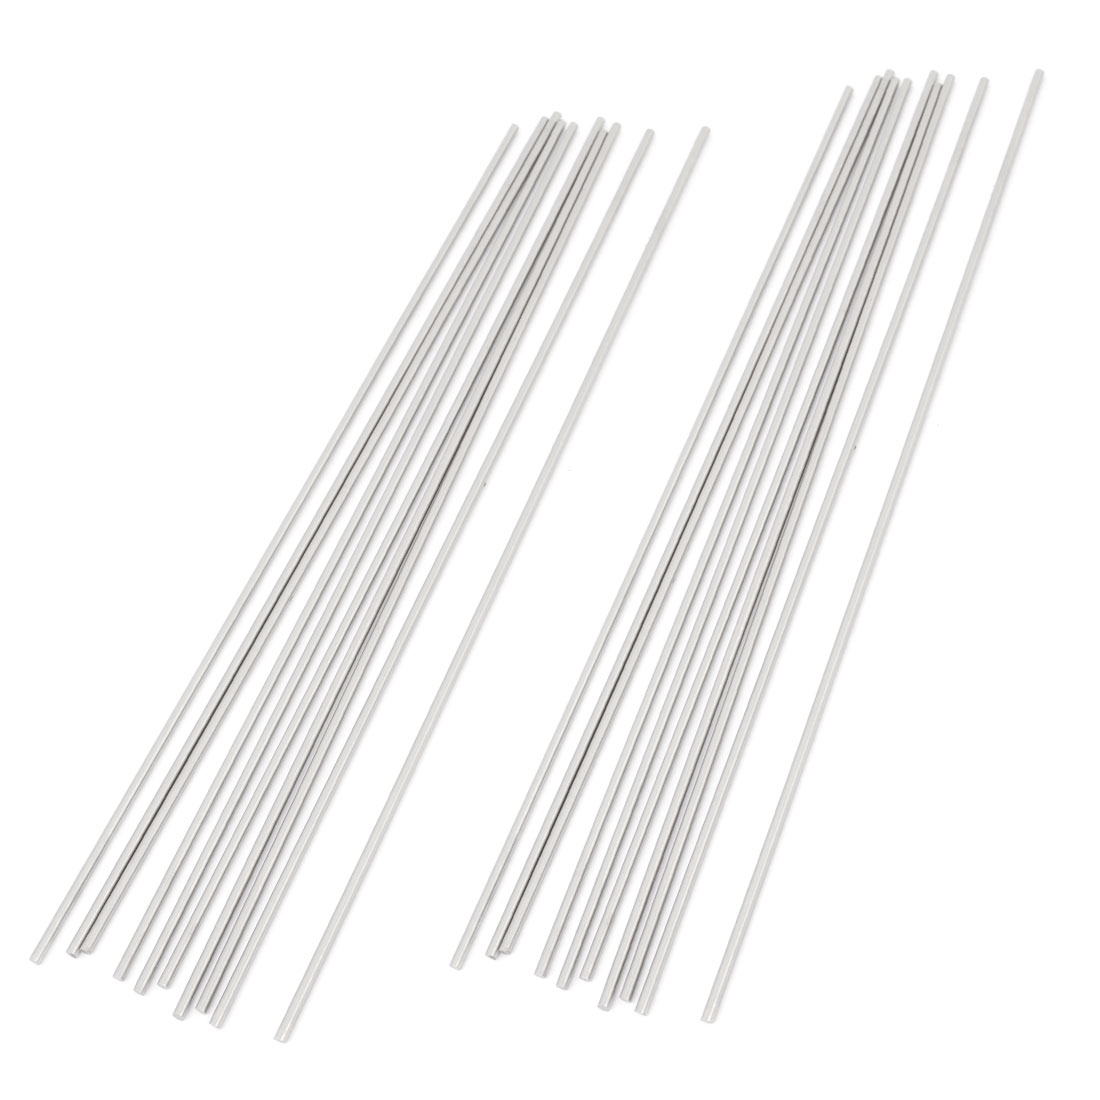 20Pcs 1mmx100mm HSS High Speed Steel Turning Carbide Bars for CNC Lathe